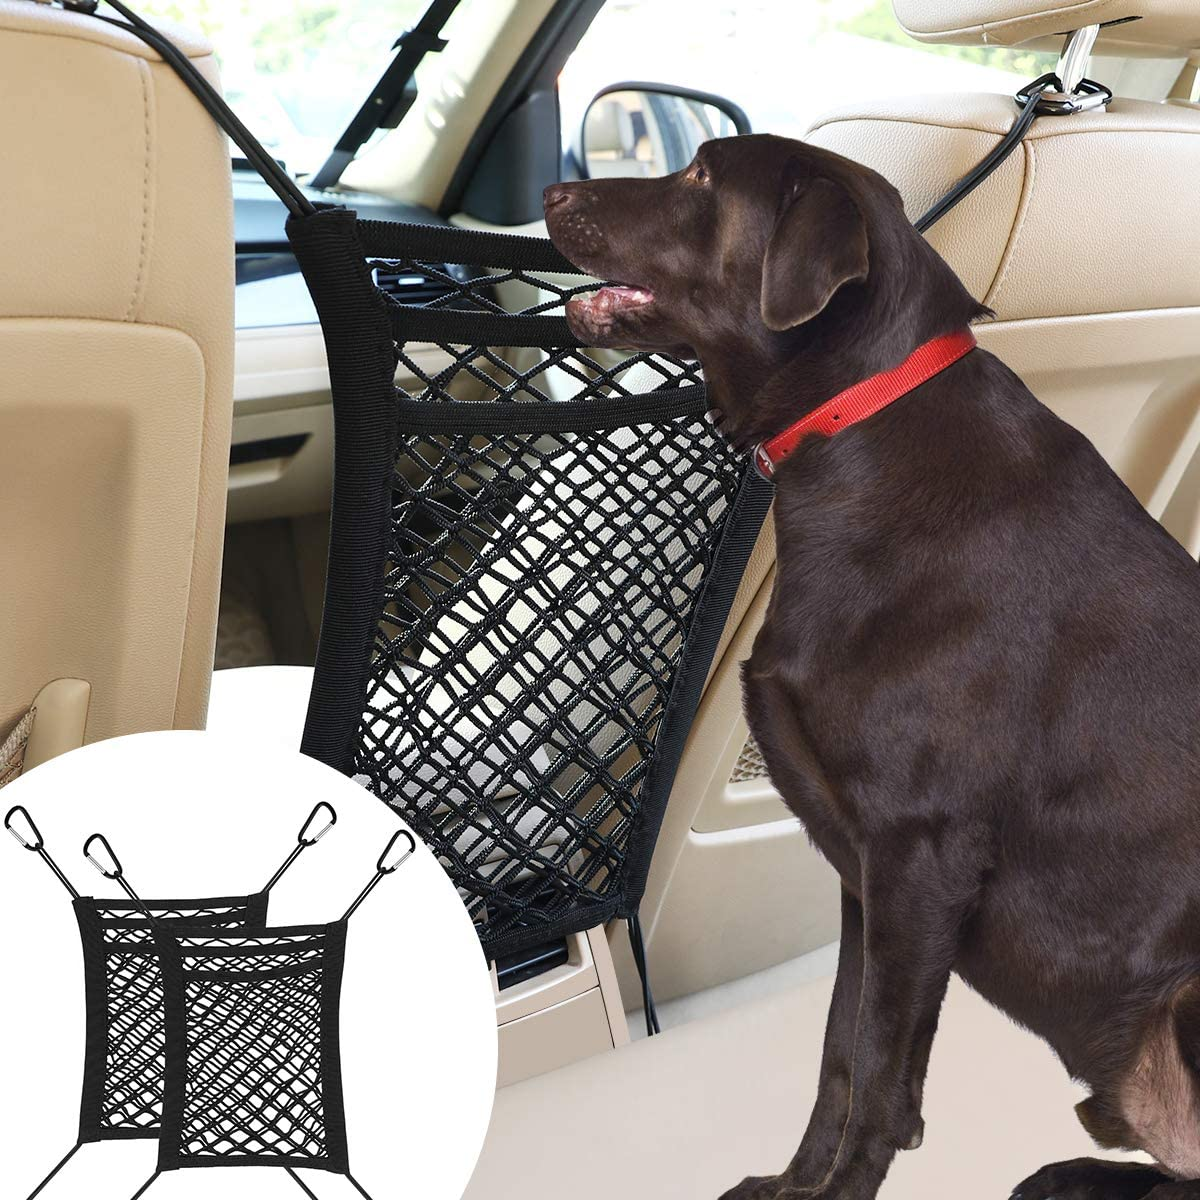 VavoPaw Dog Car Net Barrier, 2 Pack Pet Stretchable Mesh Obstacle Storage Bag Universal for SUVs, Cars, 3 Layers Easy Install Back Seat Safe Disturb Stopper to Drive with Children & Pets - Black